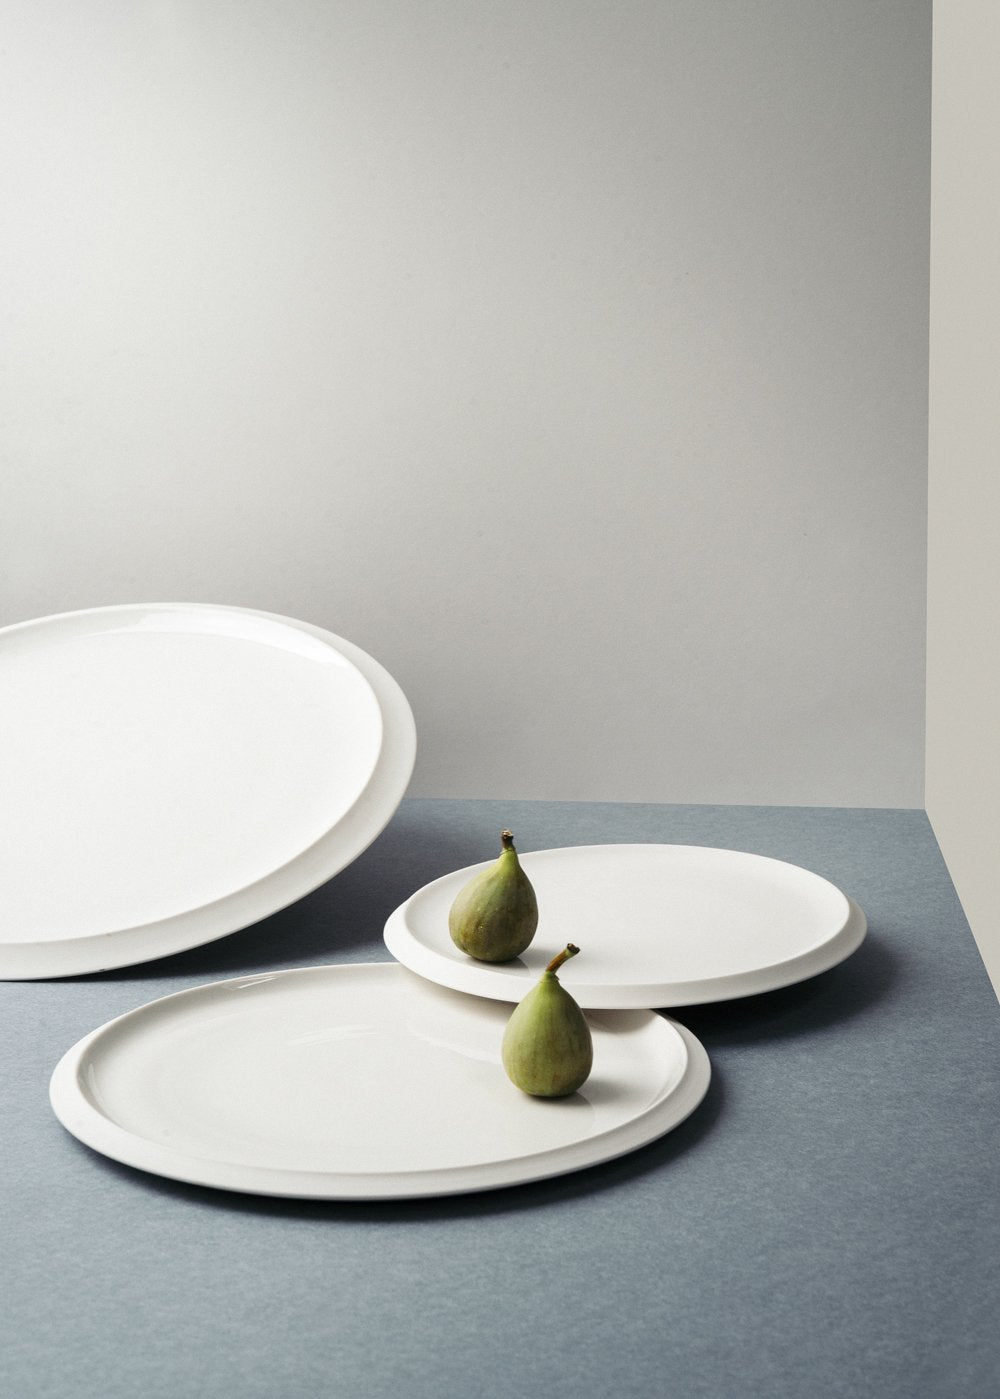 Grey platters and figs